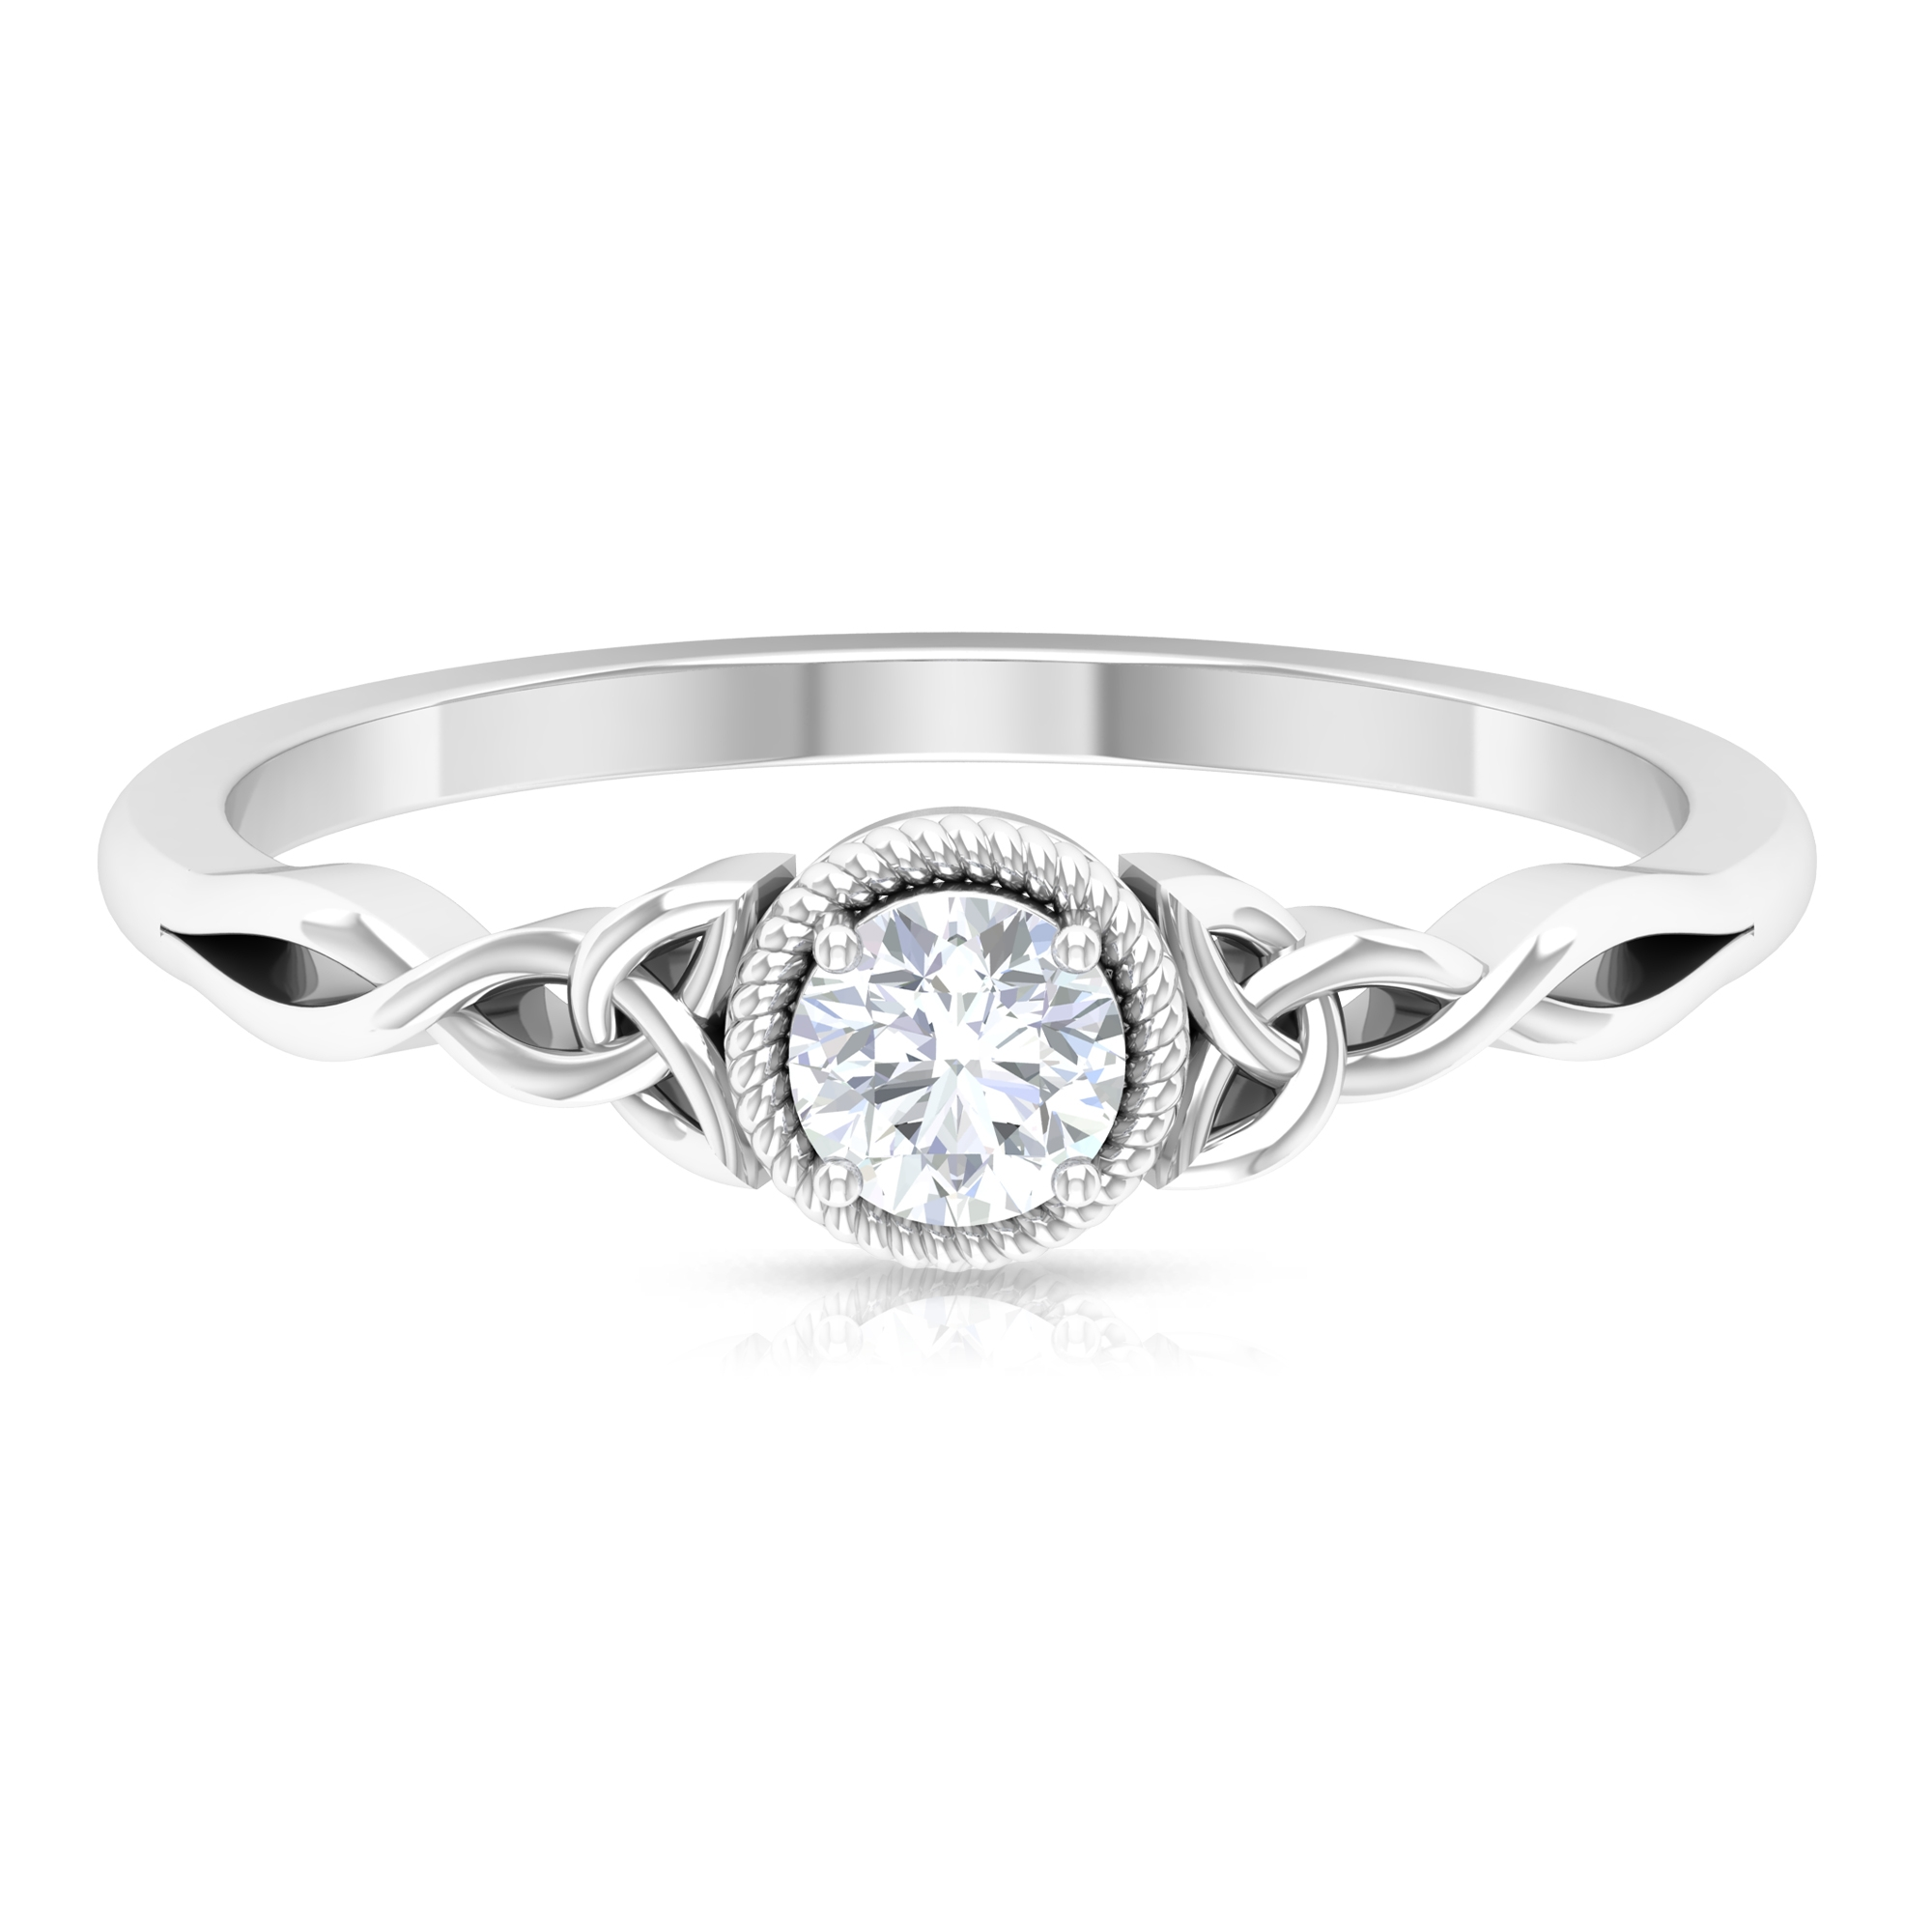 4 MM Round Cut Diamond Solitaire Ring in Prong Setting with Rope Frame Celtic Details